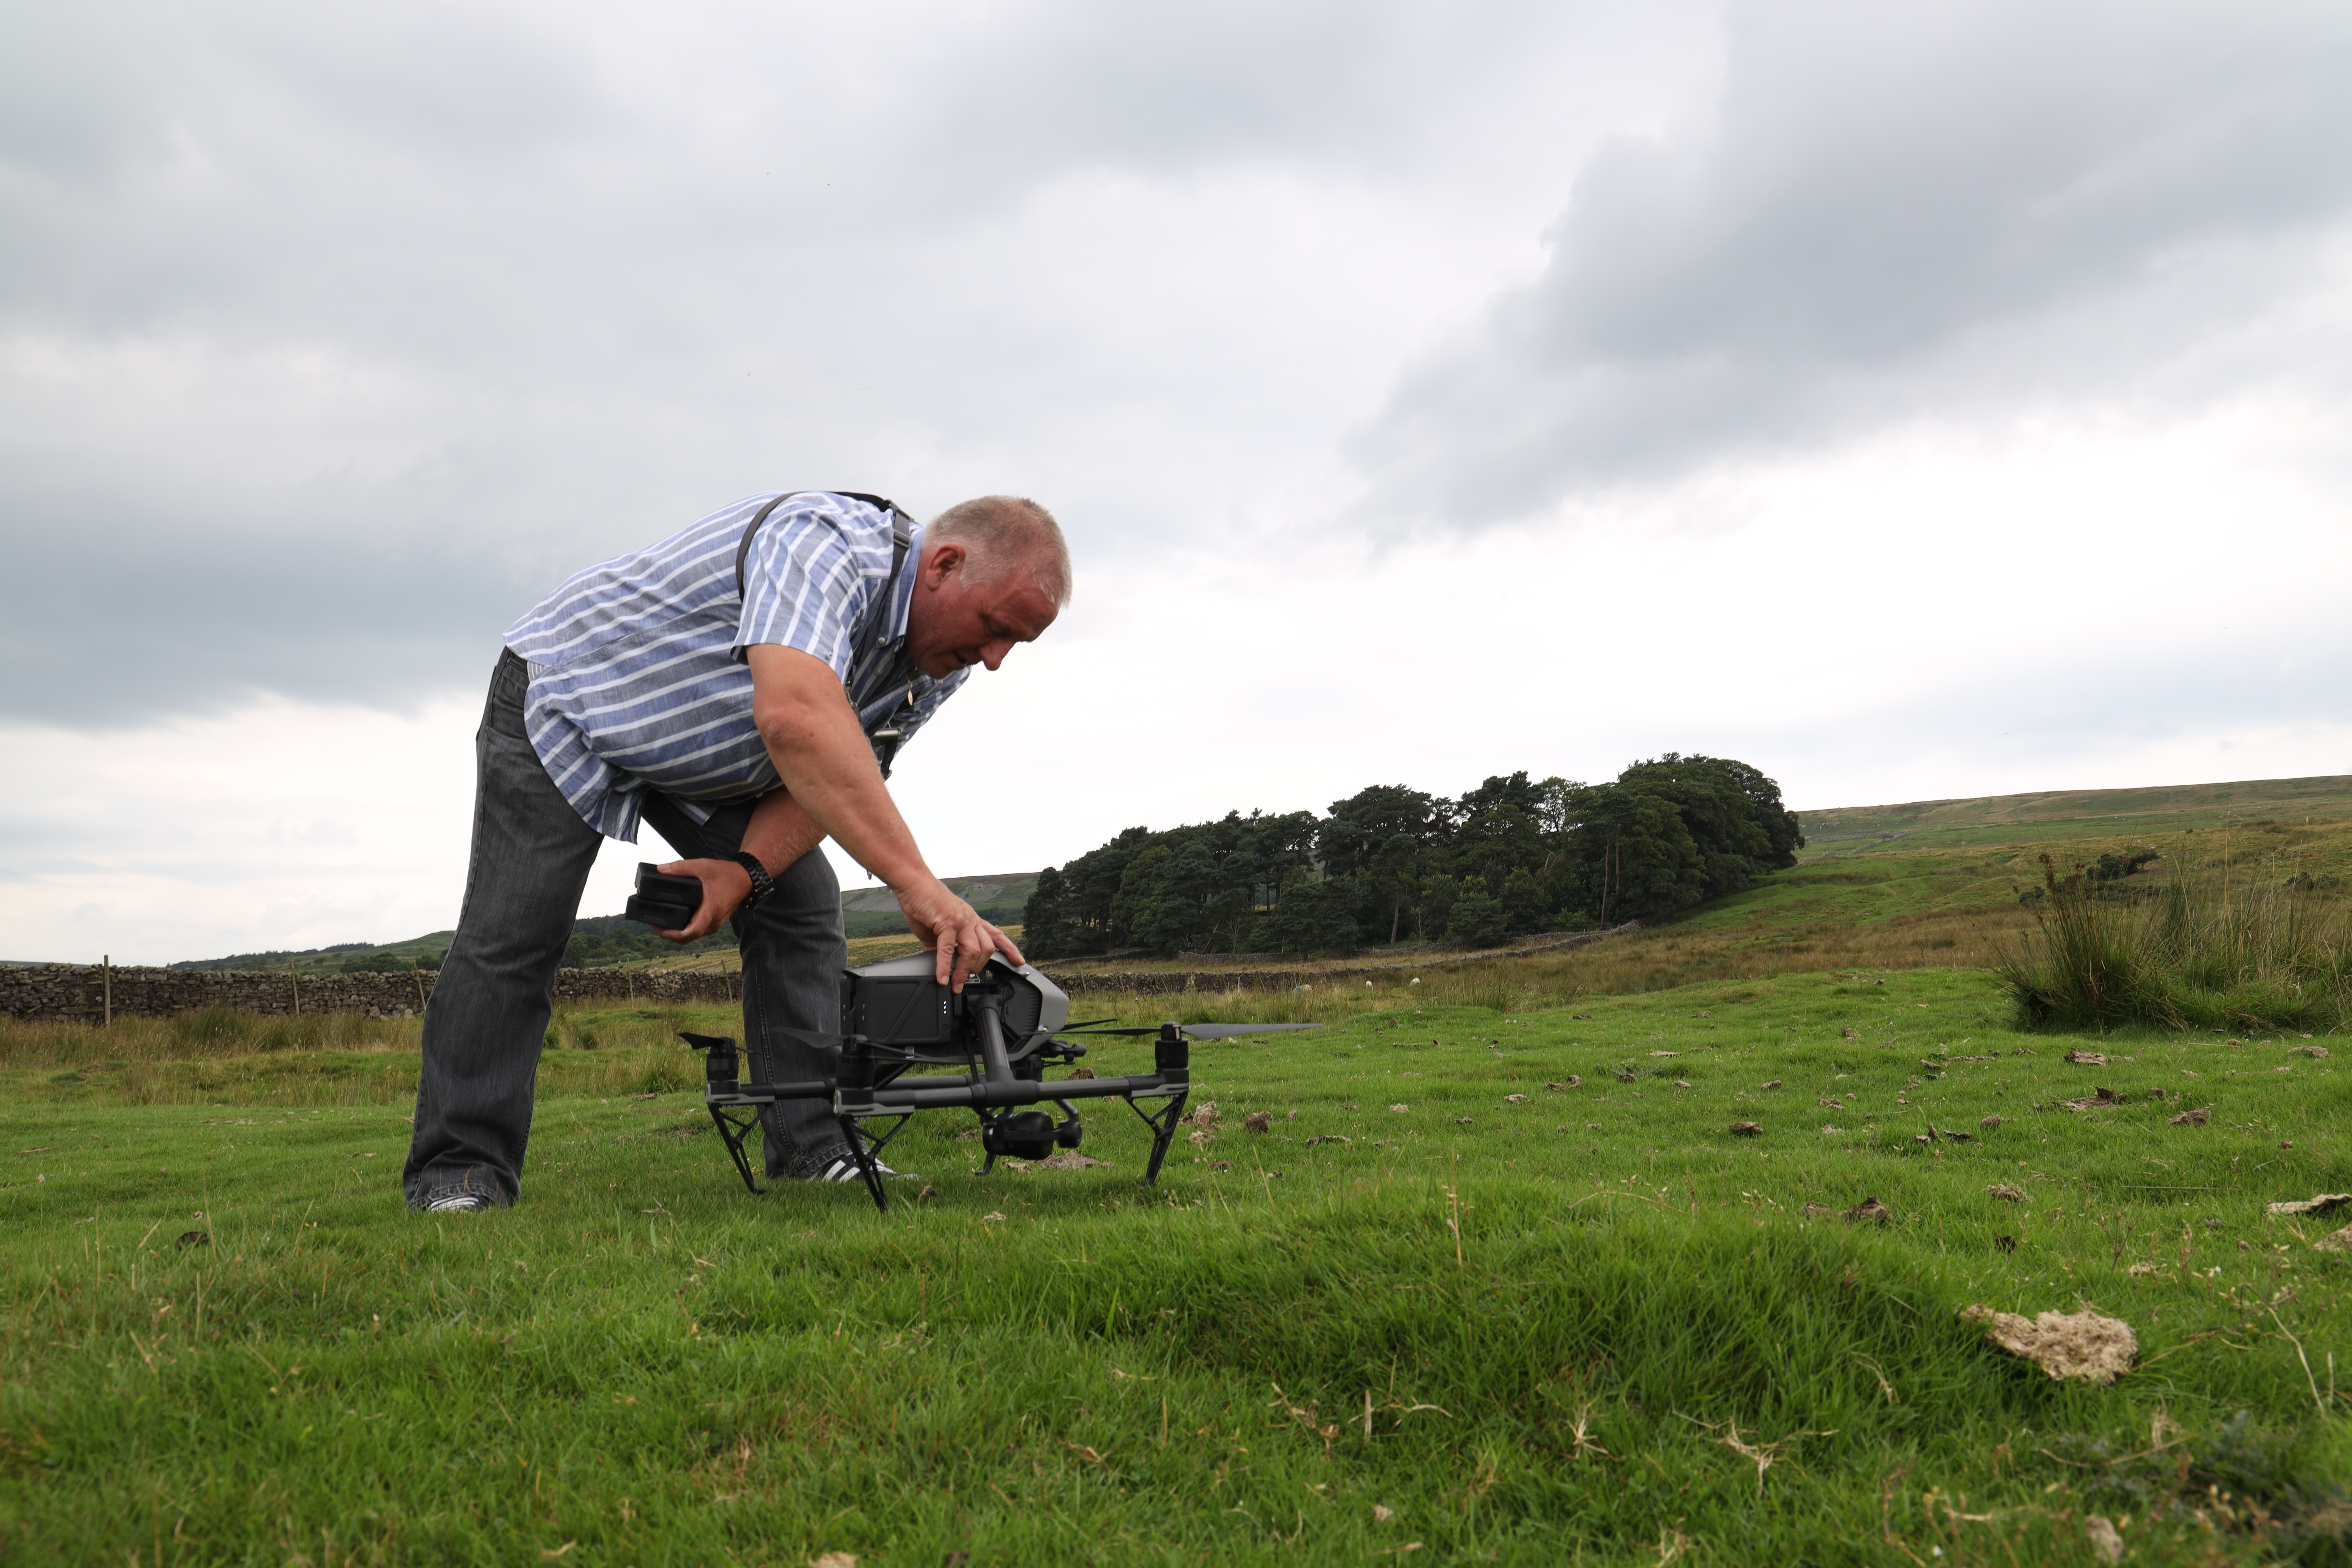 Drone operator setting up drone in the Dales for Cycle the Dales promotional video with Pocket Projects